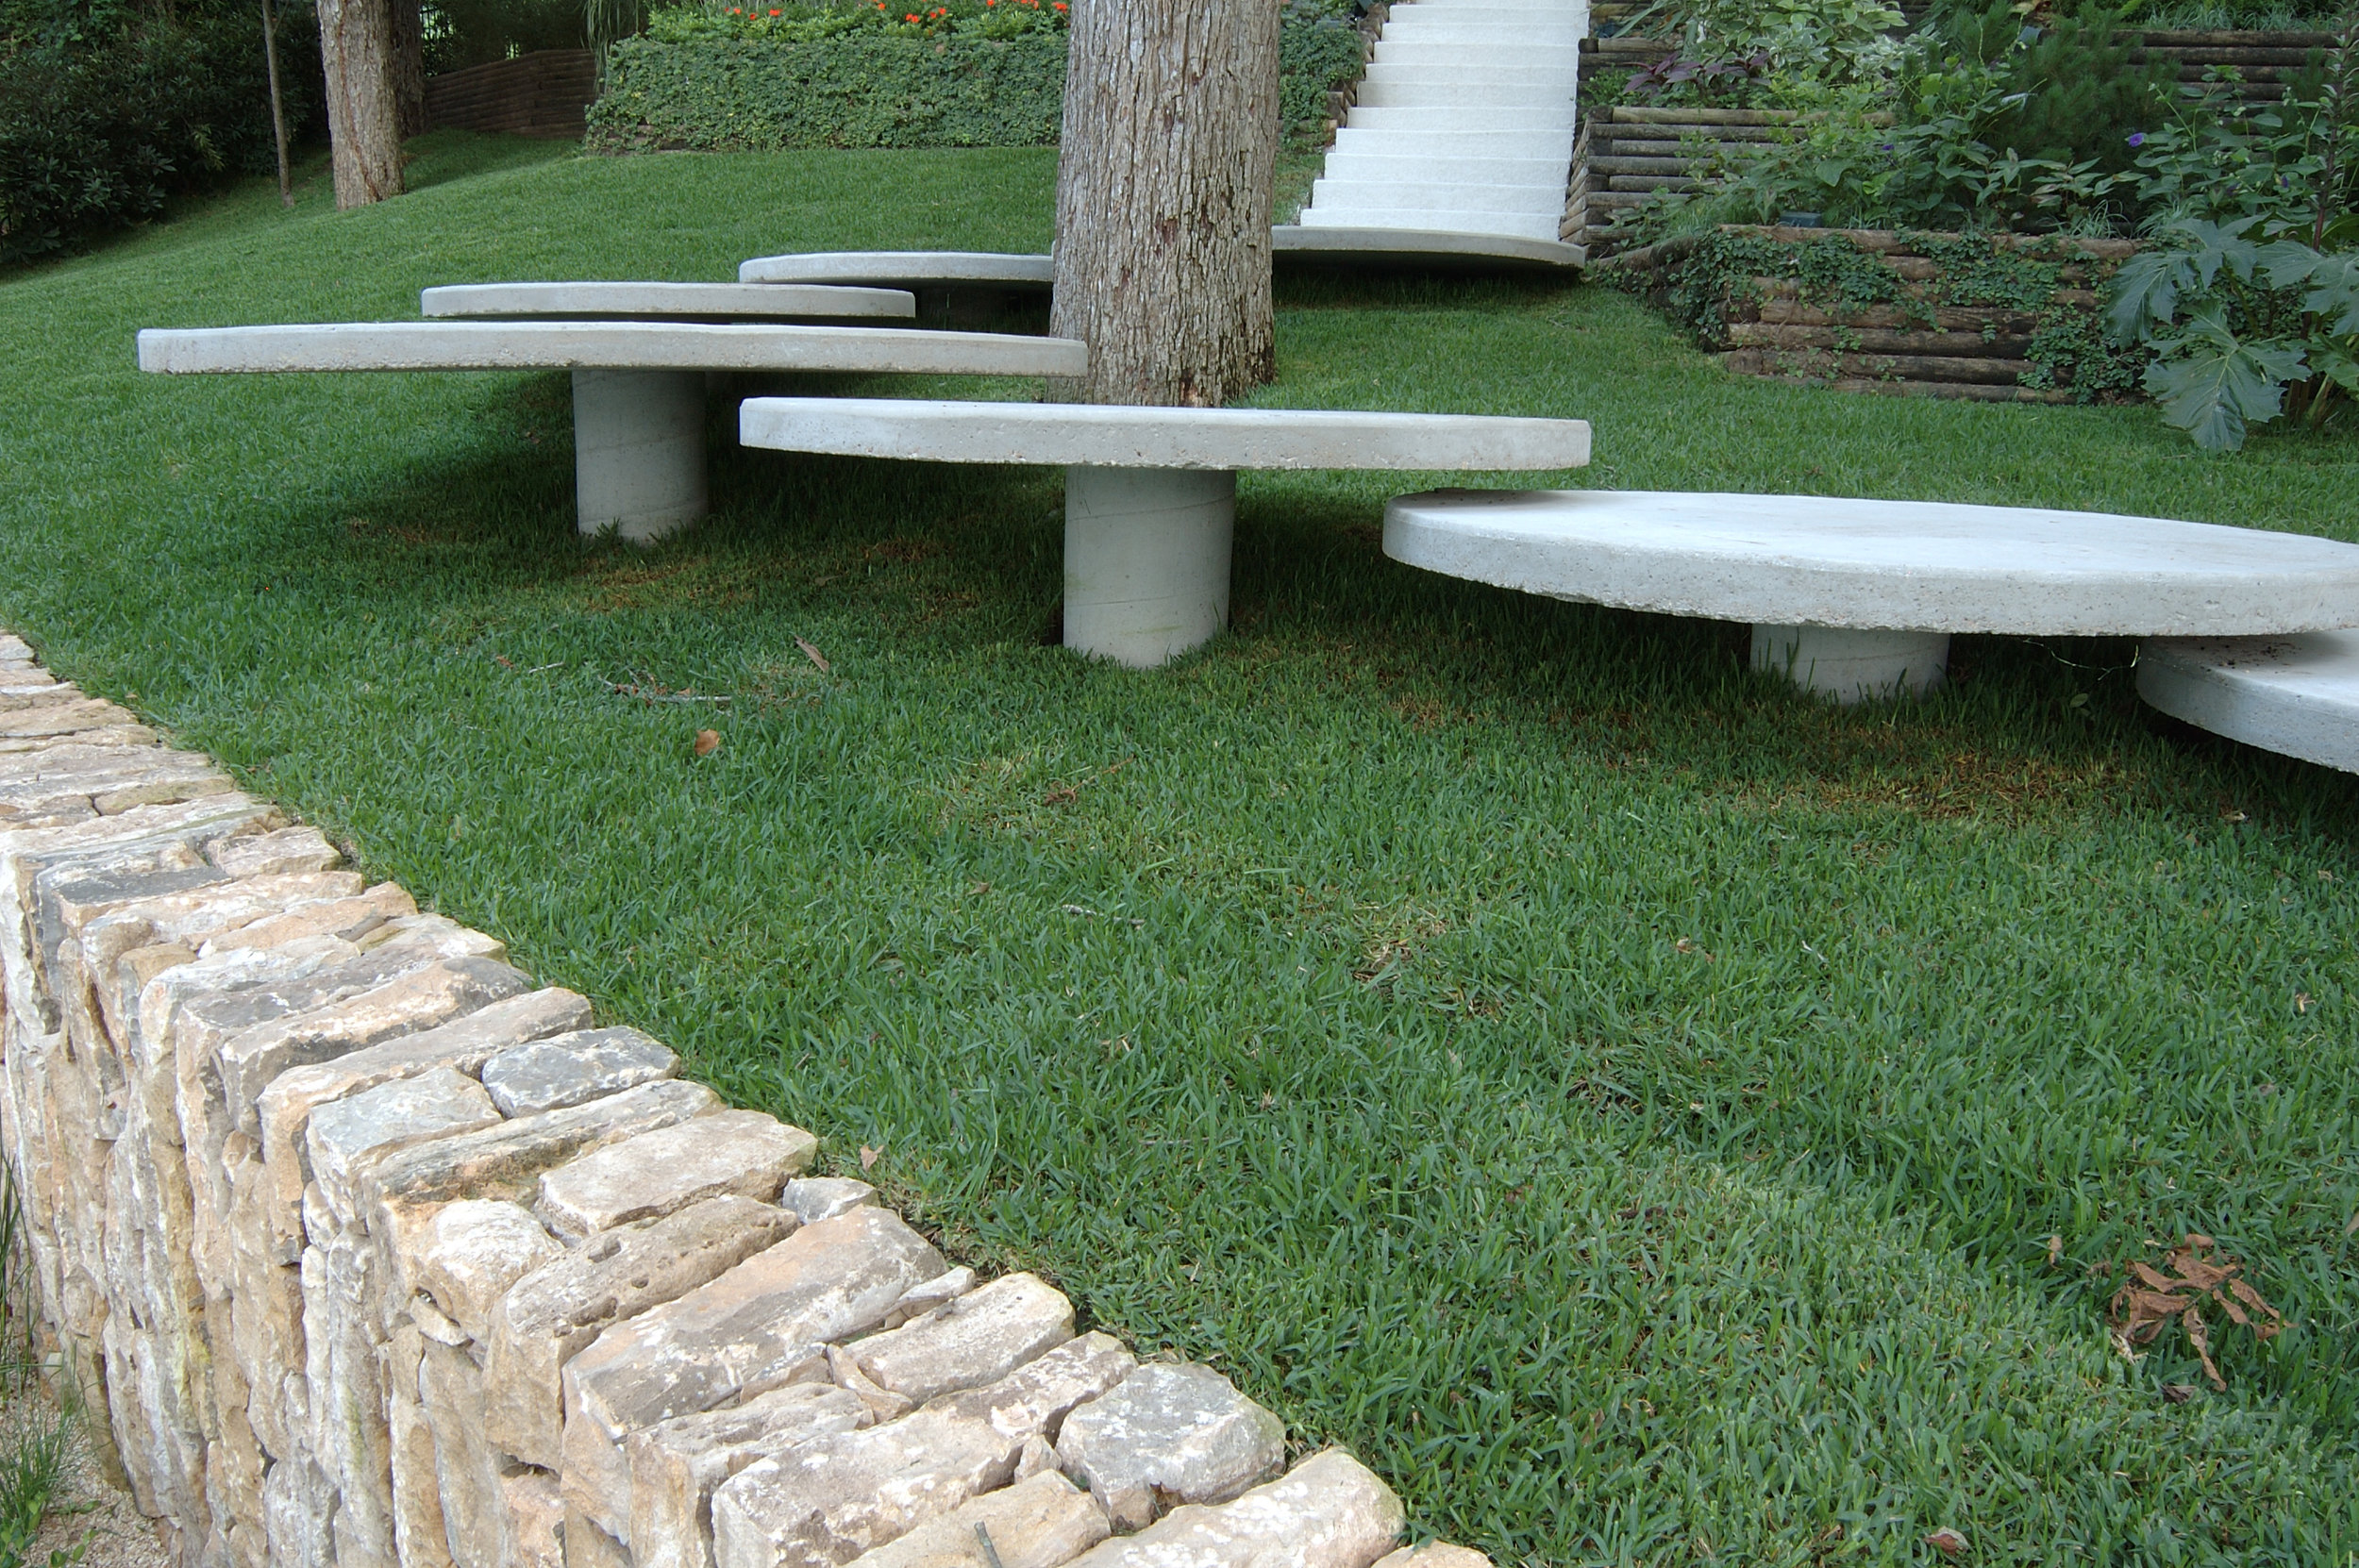 project-thornton-lake-austin-grass-circle-steps.jpg